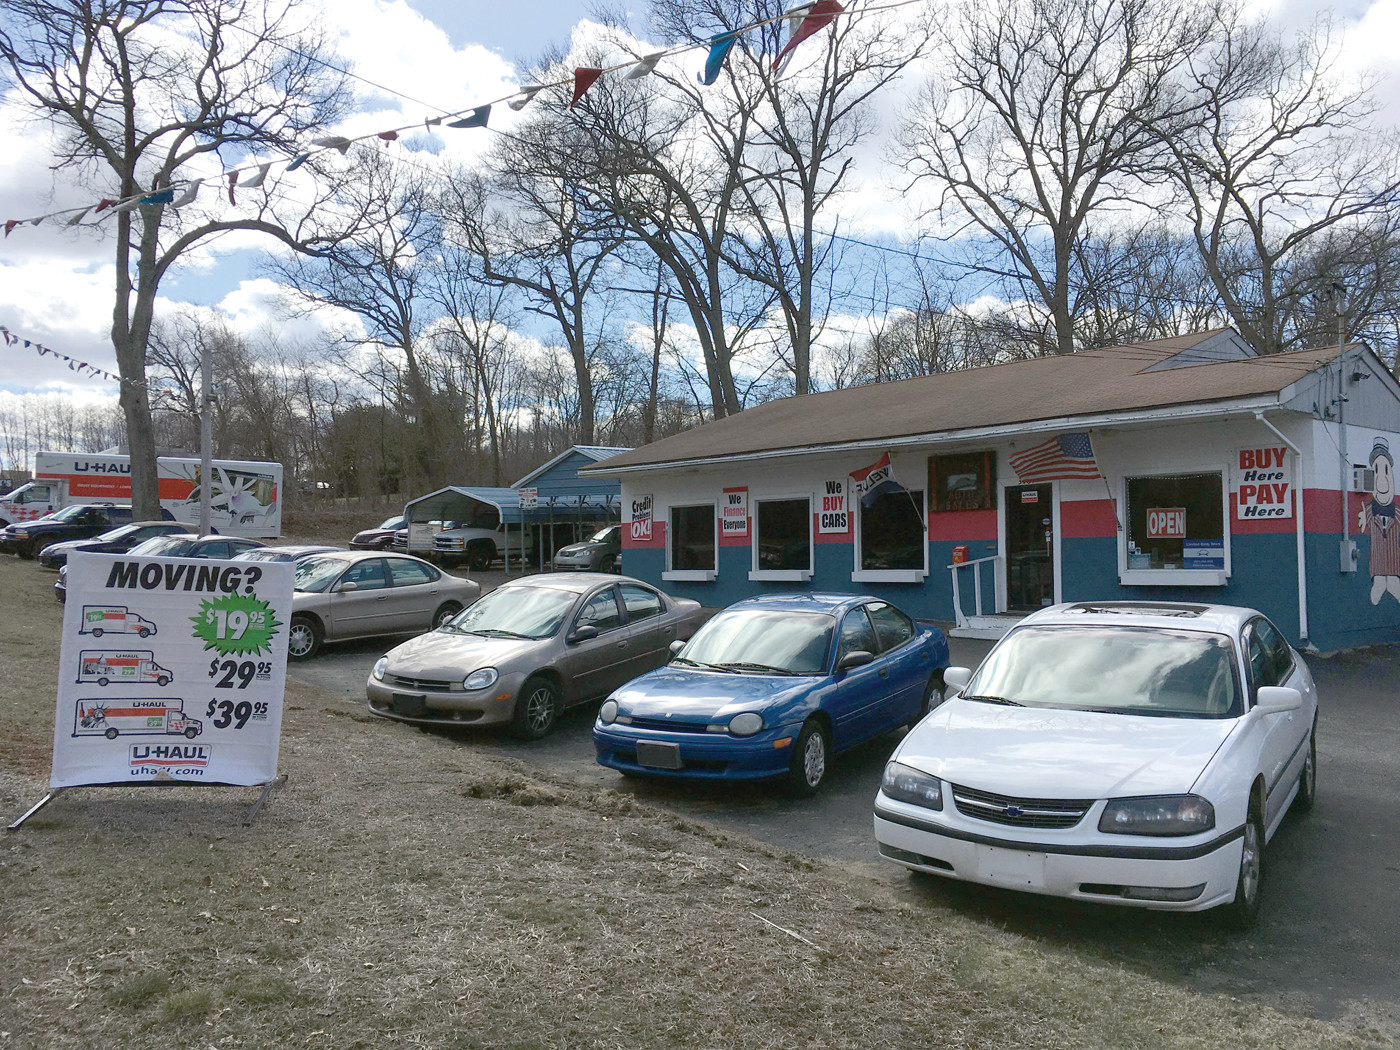 ziggy's auto sales a buy-here, pay-here dealership in north